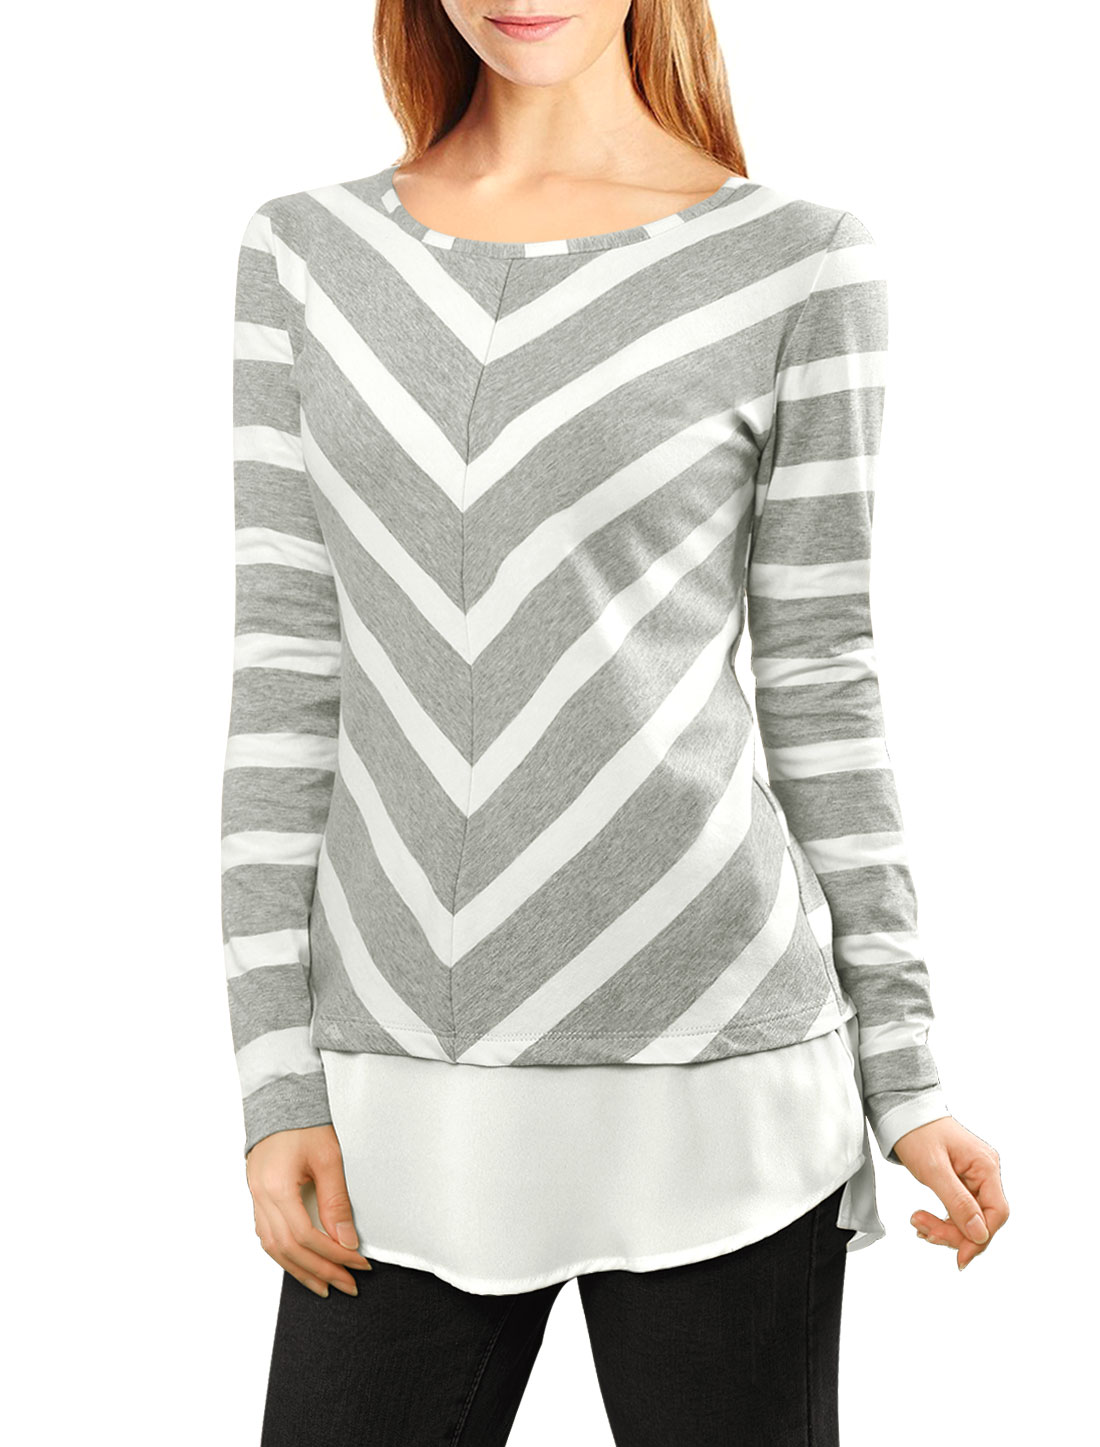 Women Layered Tunic Top in Striped and Chevron Print Gray XS